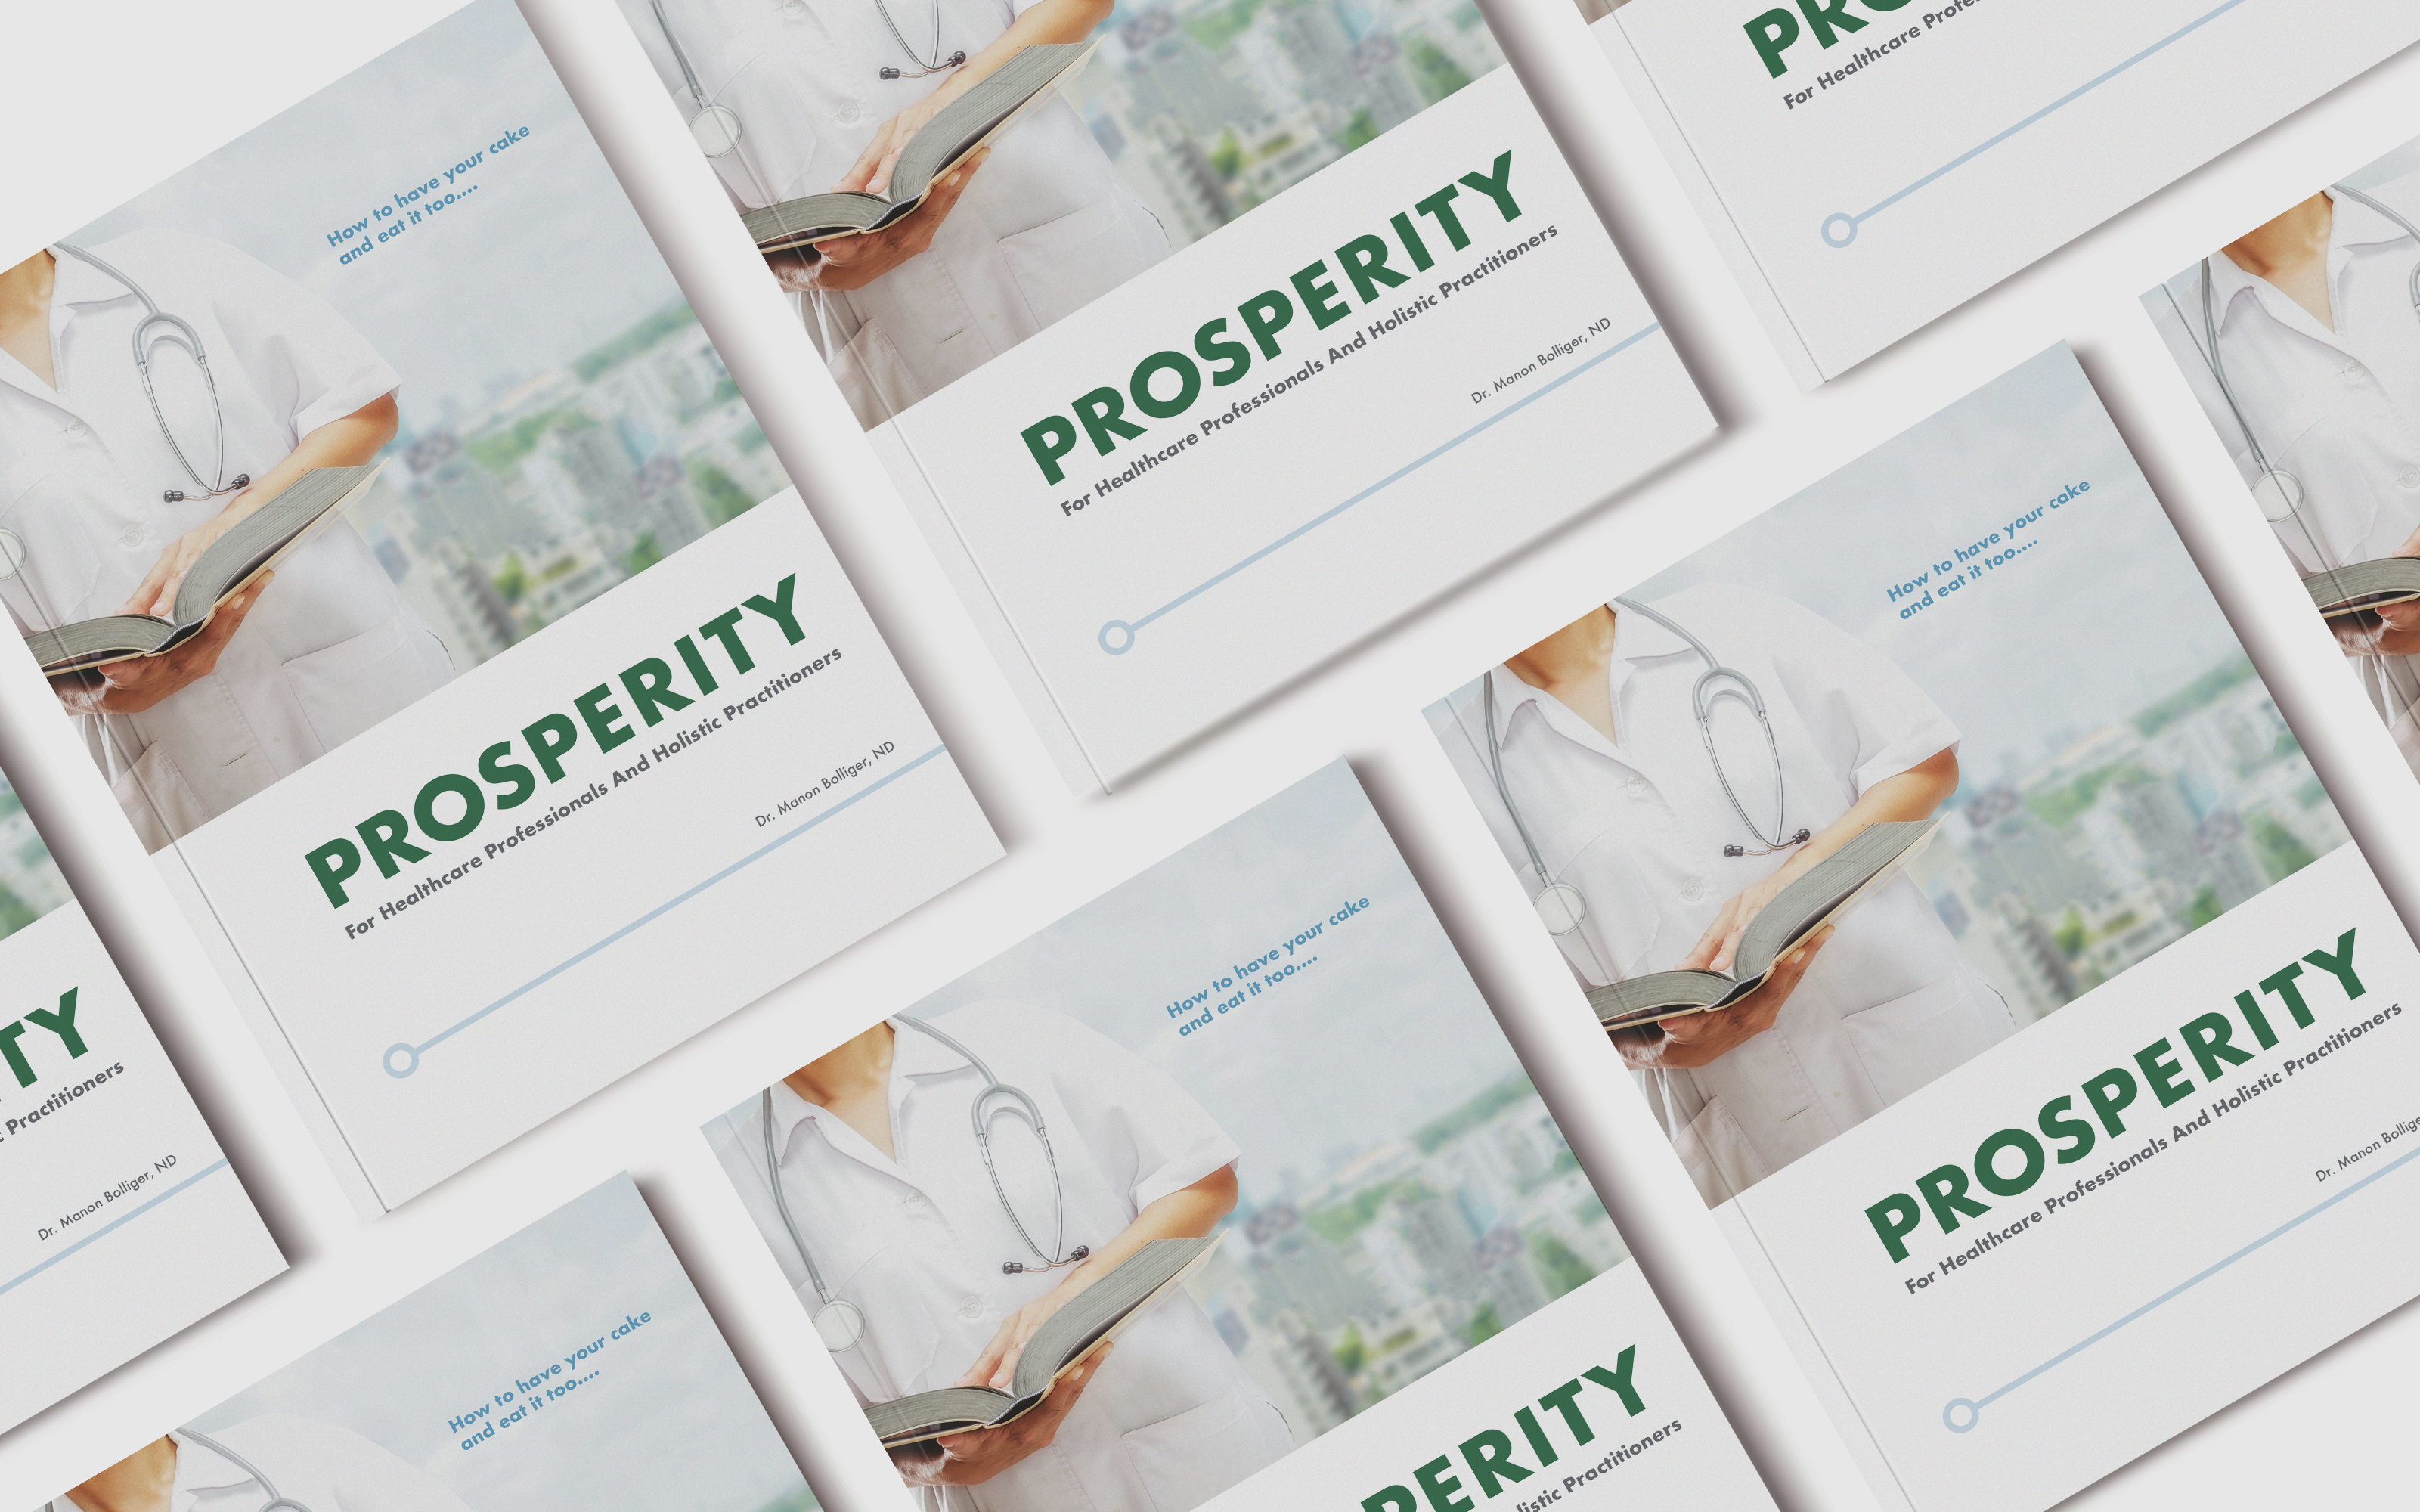 Prosperity Booklet